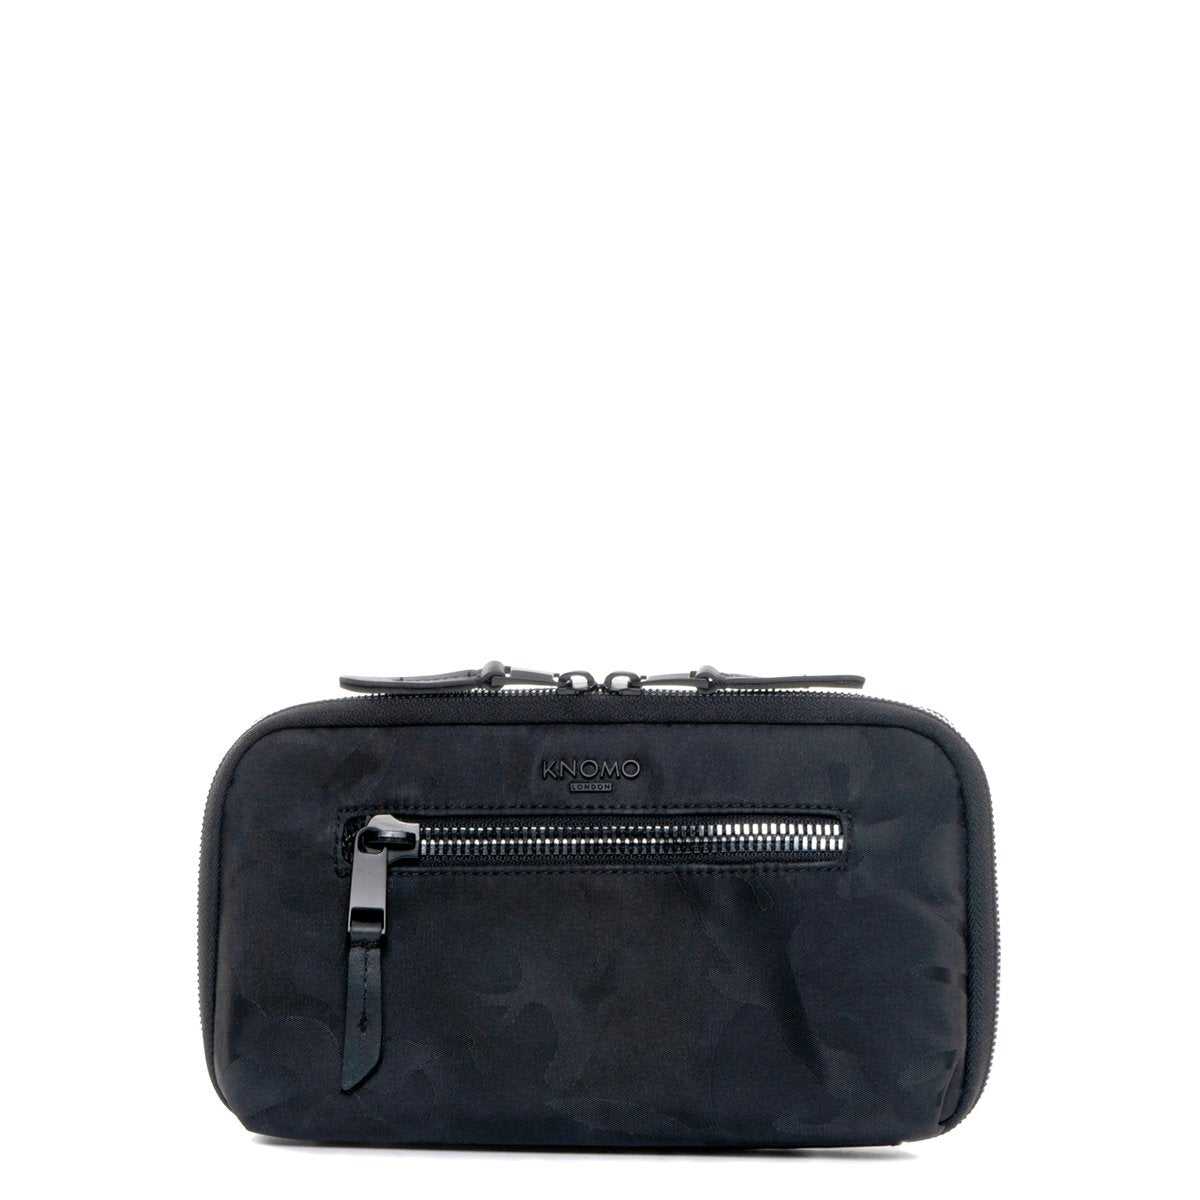 "KNOMO Knomad Travel Wallet Travel Organiser From Front 8"" -  Black Camouflage 